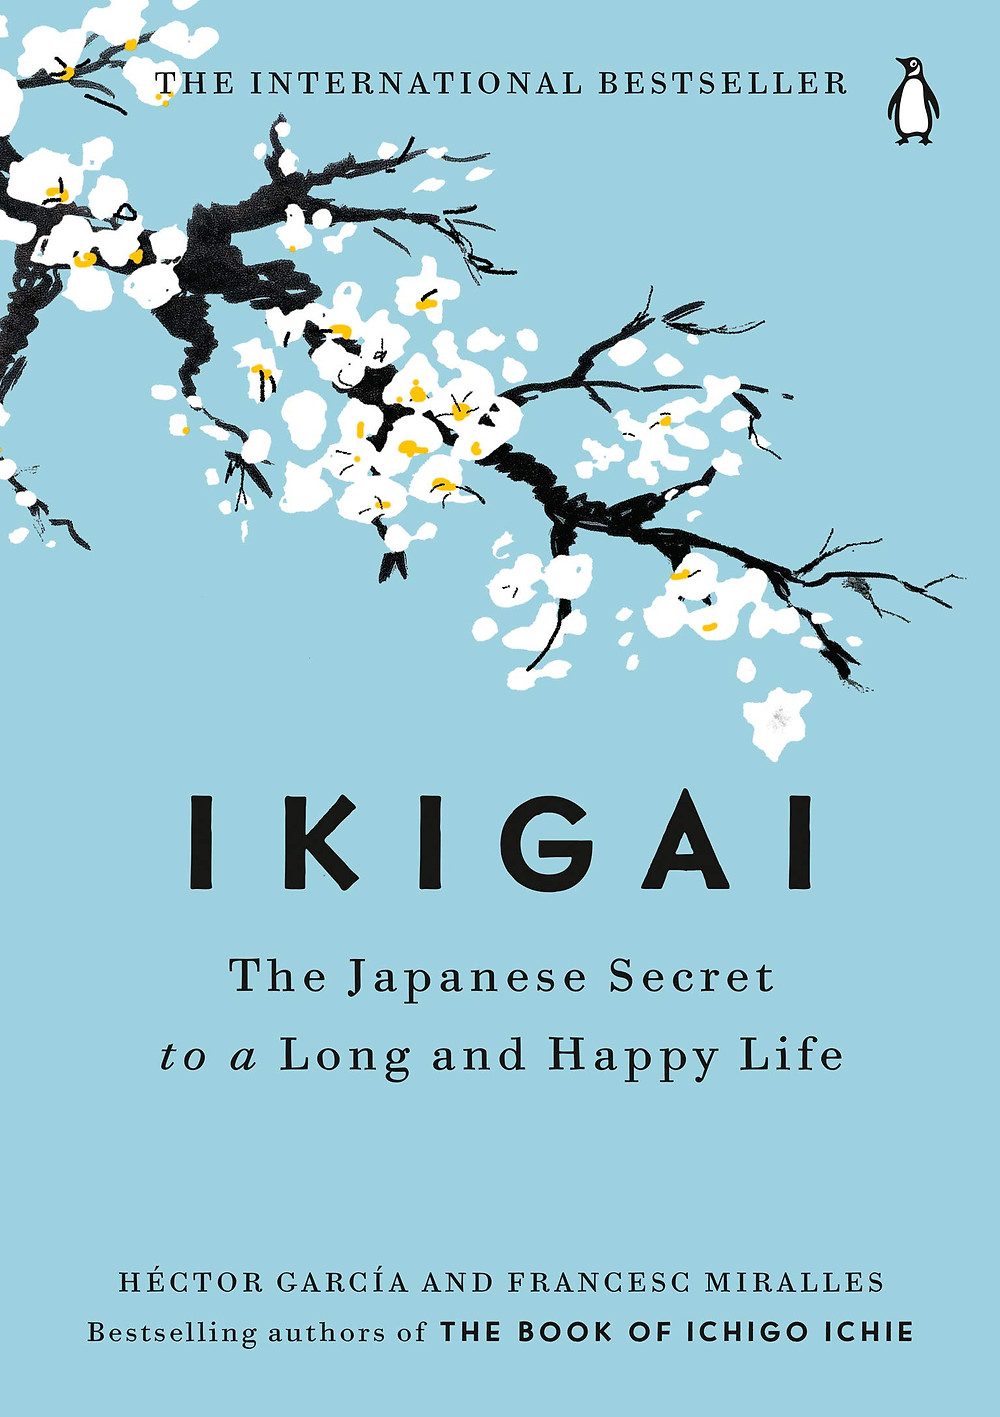 Ikigai by Hector Garcia and Francesca Miralles